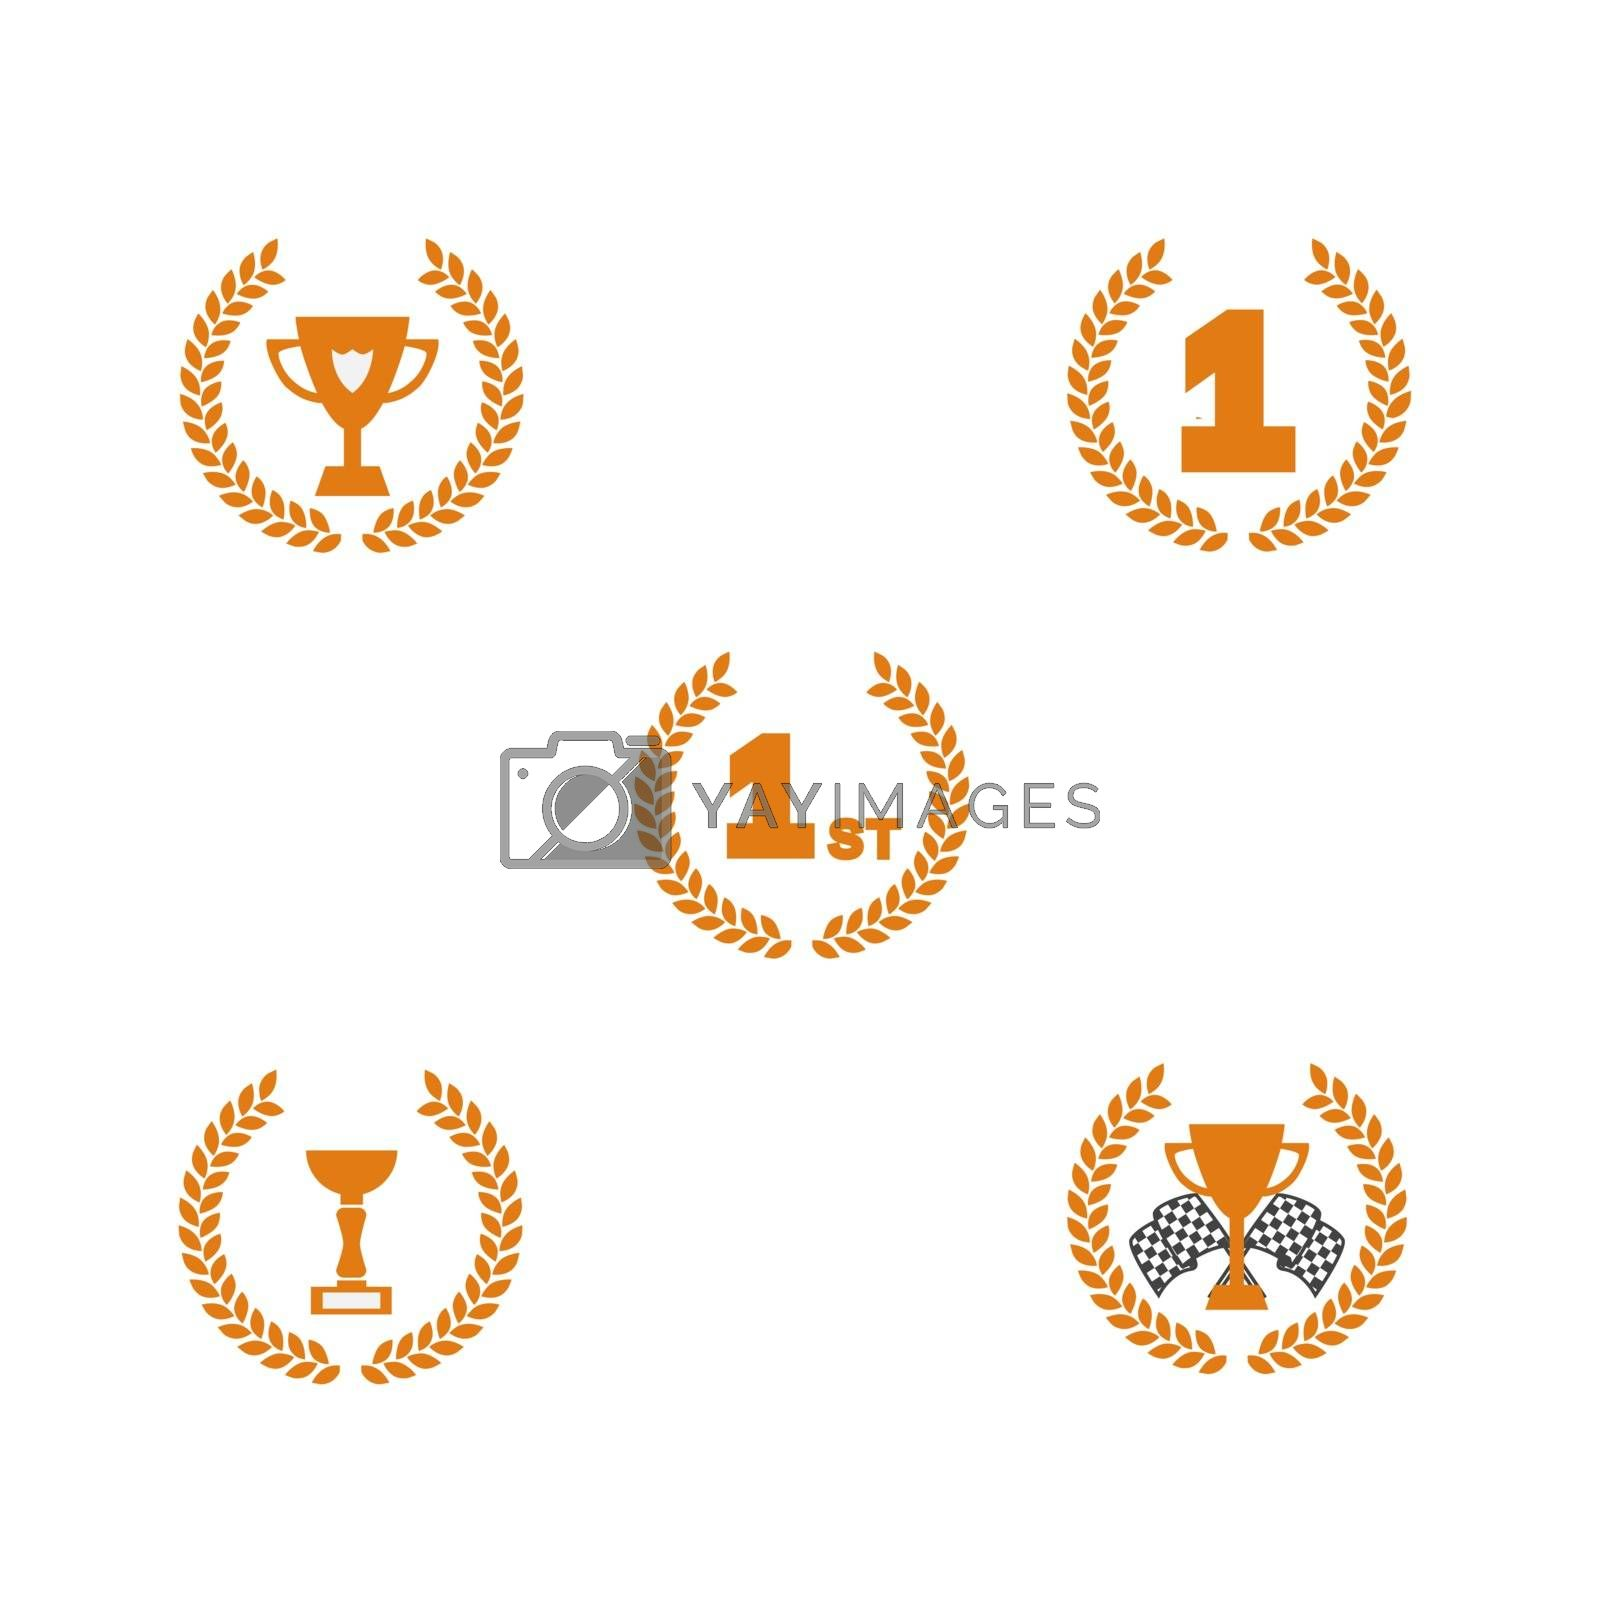 Award winning icon set. Simple flat symbols. Sports and race first place championship gold wreath medal and cup. Competition winner award. Victory icon. Isolated graphic illustration win icon set first place award